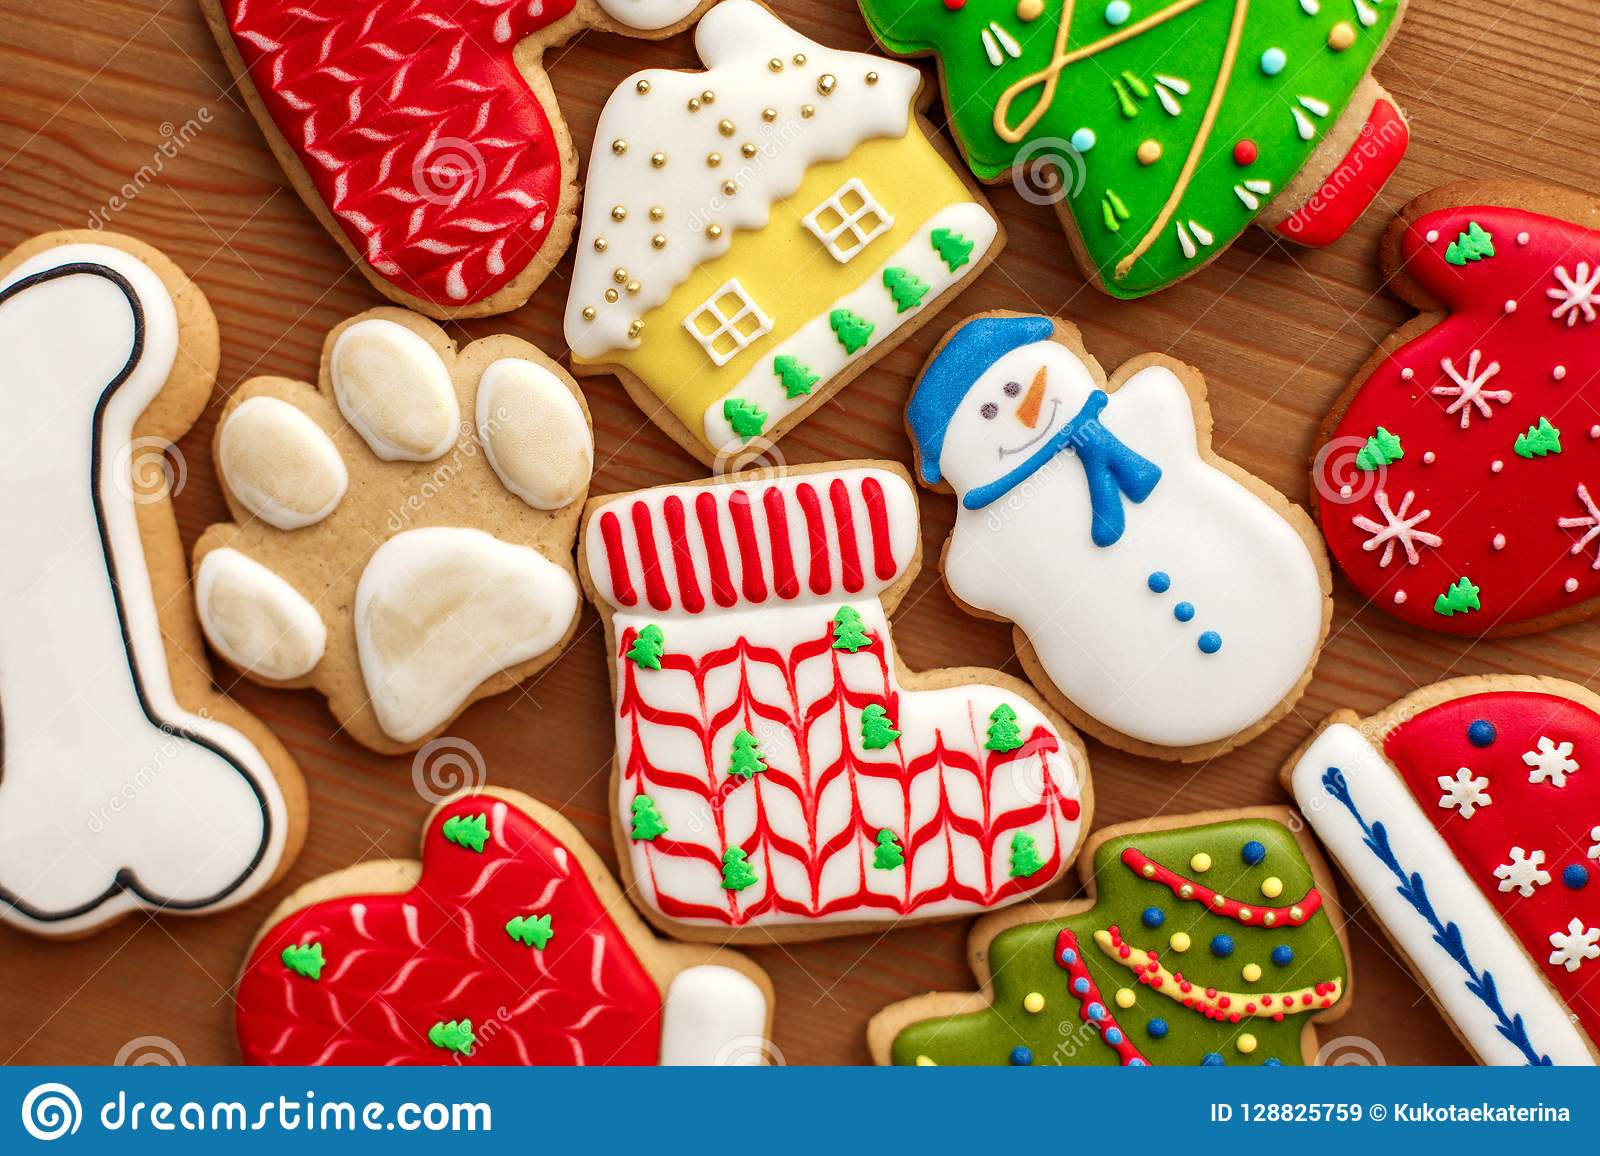 Colorful Christmas Cookies Set Lay On Wooden Table Holidays Food